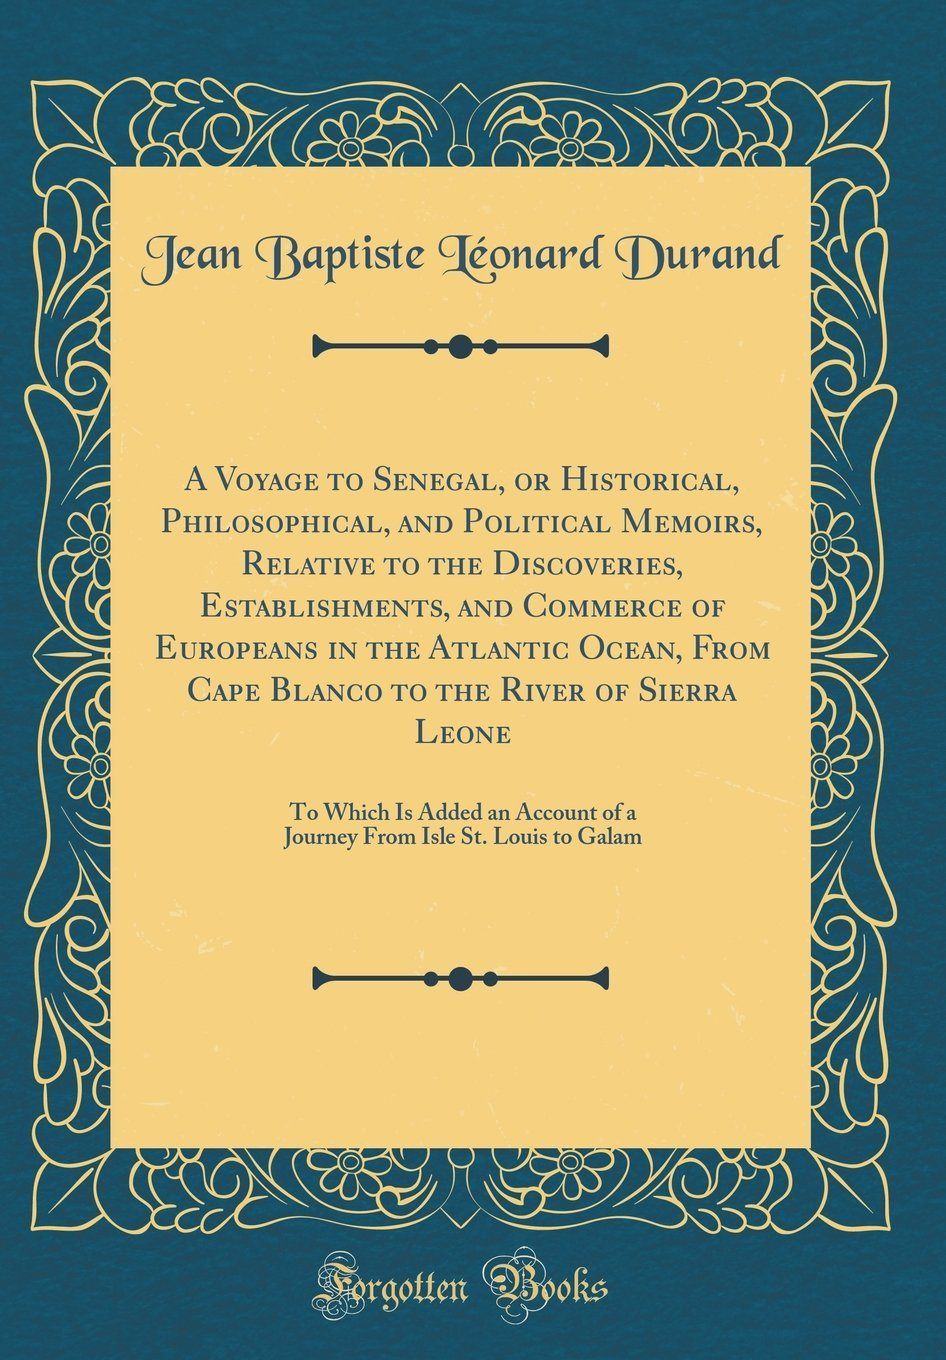 Read Online A Voyage to Senegal, or Historical, Philosophical, and Political Memoirs, Relative to the Discoveries, Establishments, and Commerce of Europeans in ... To Which Is Added an Account of a Journe pdf